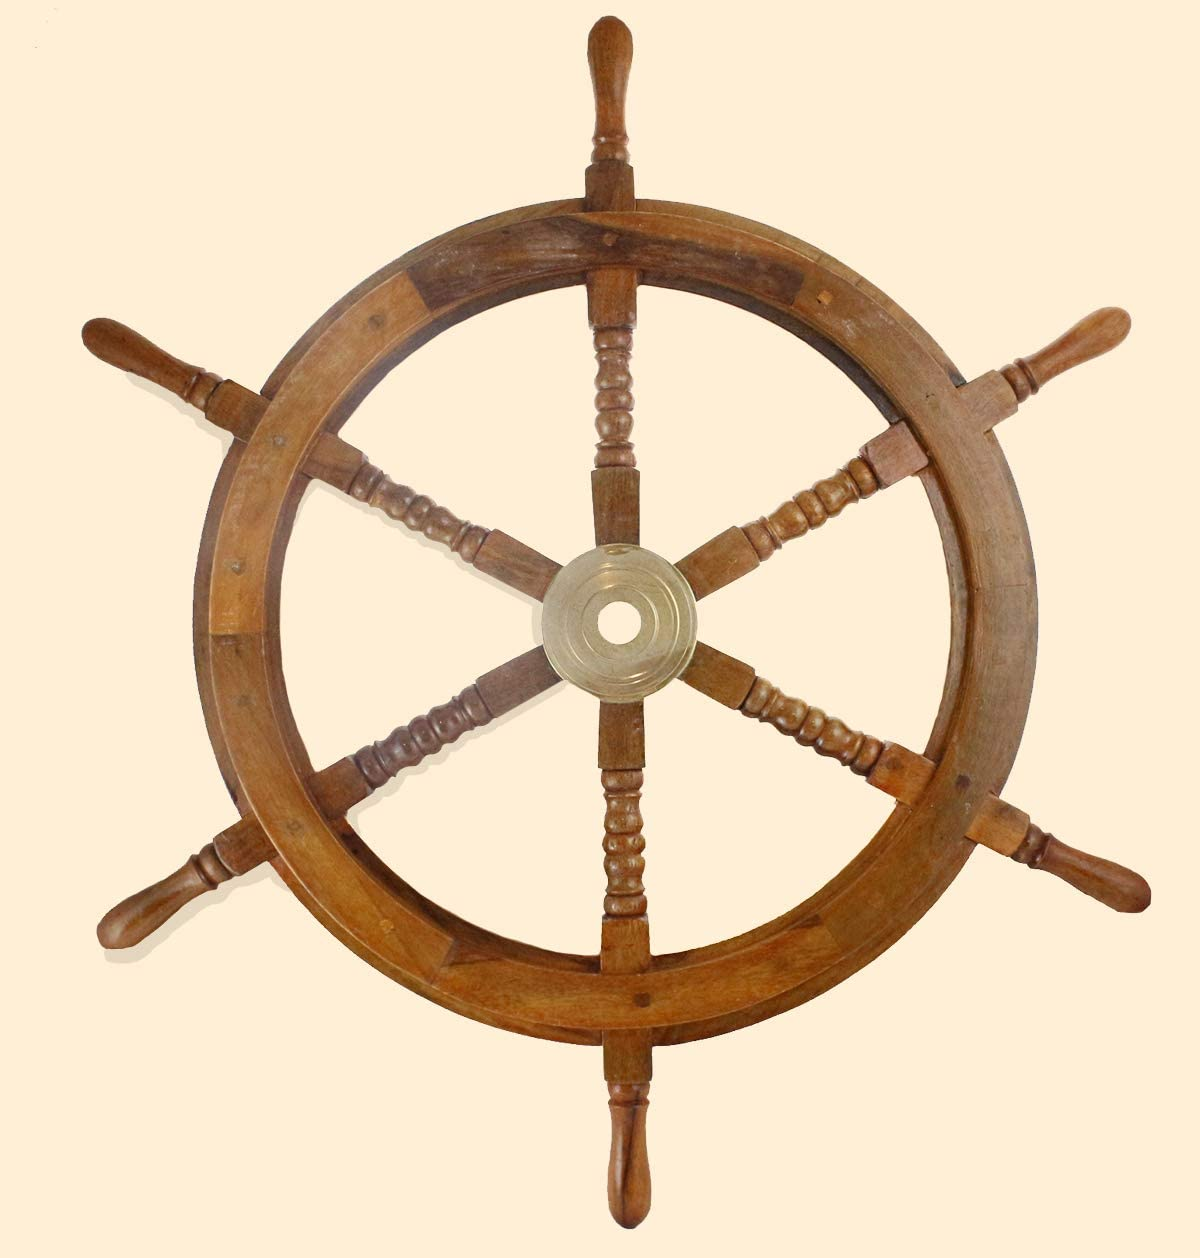 pirate // boat // nautical // marine Wooden Ship Wheel 15 Inch